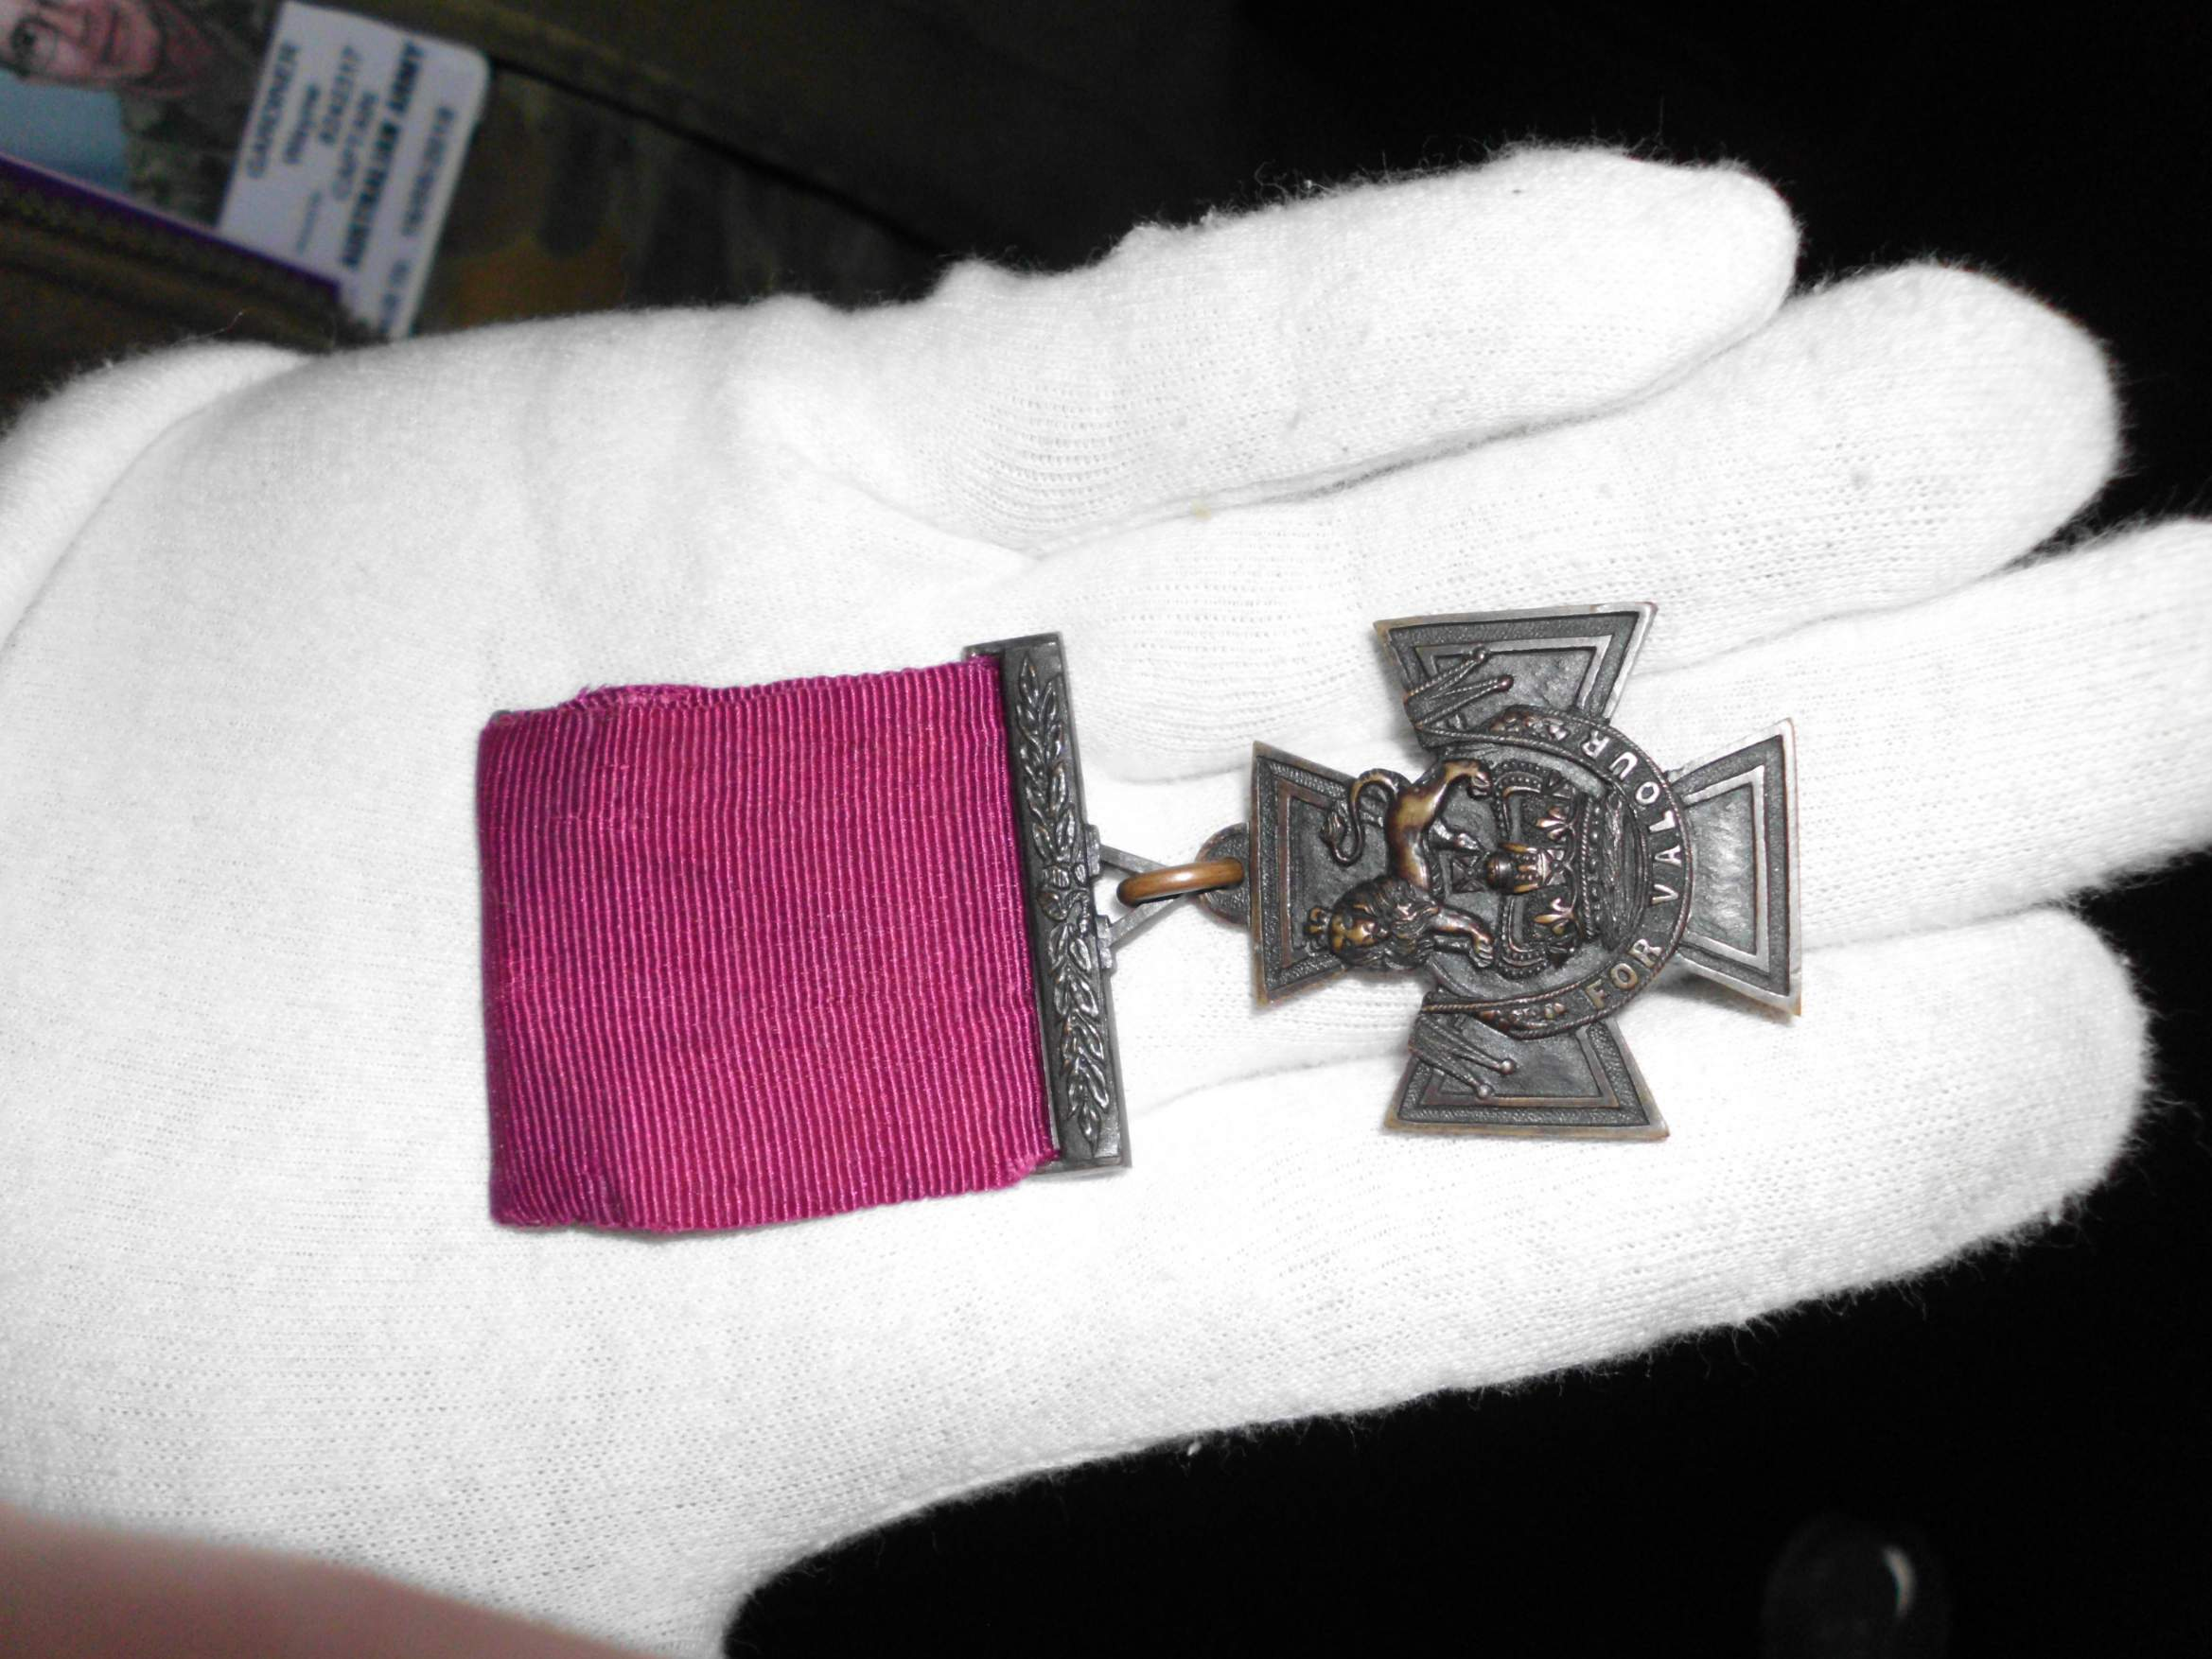 Victoria cross medal ww2 pictures - marlane barnes breaking dawn premiere photos